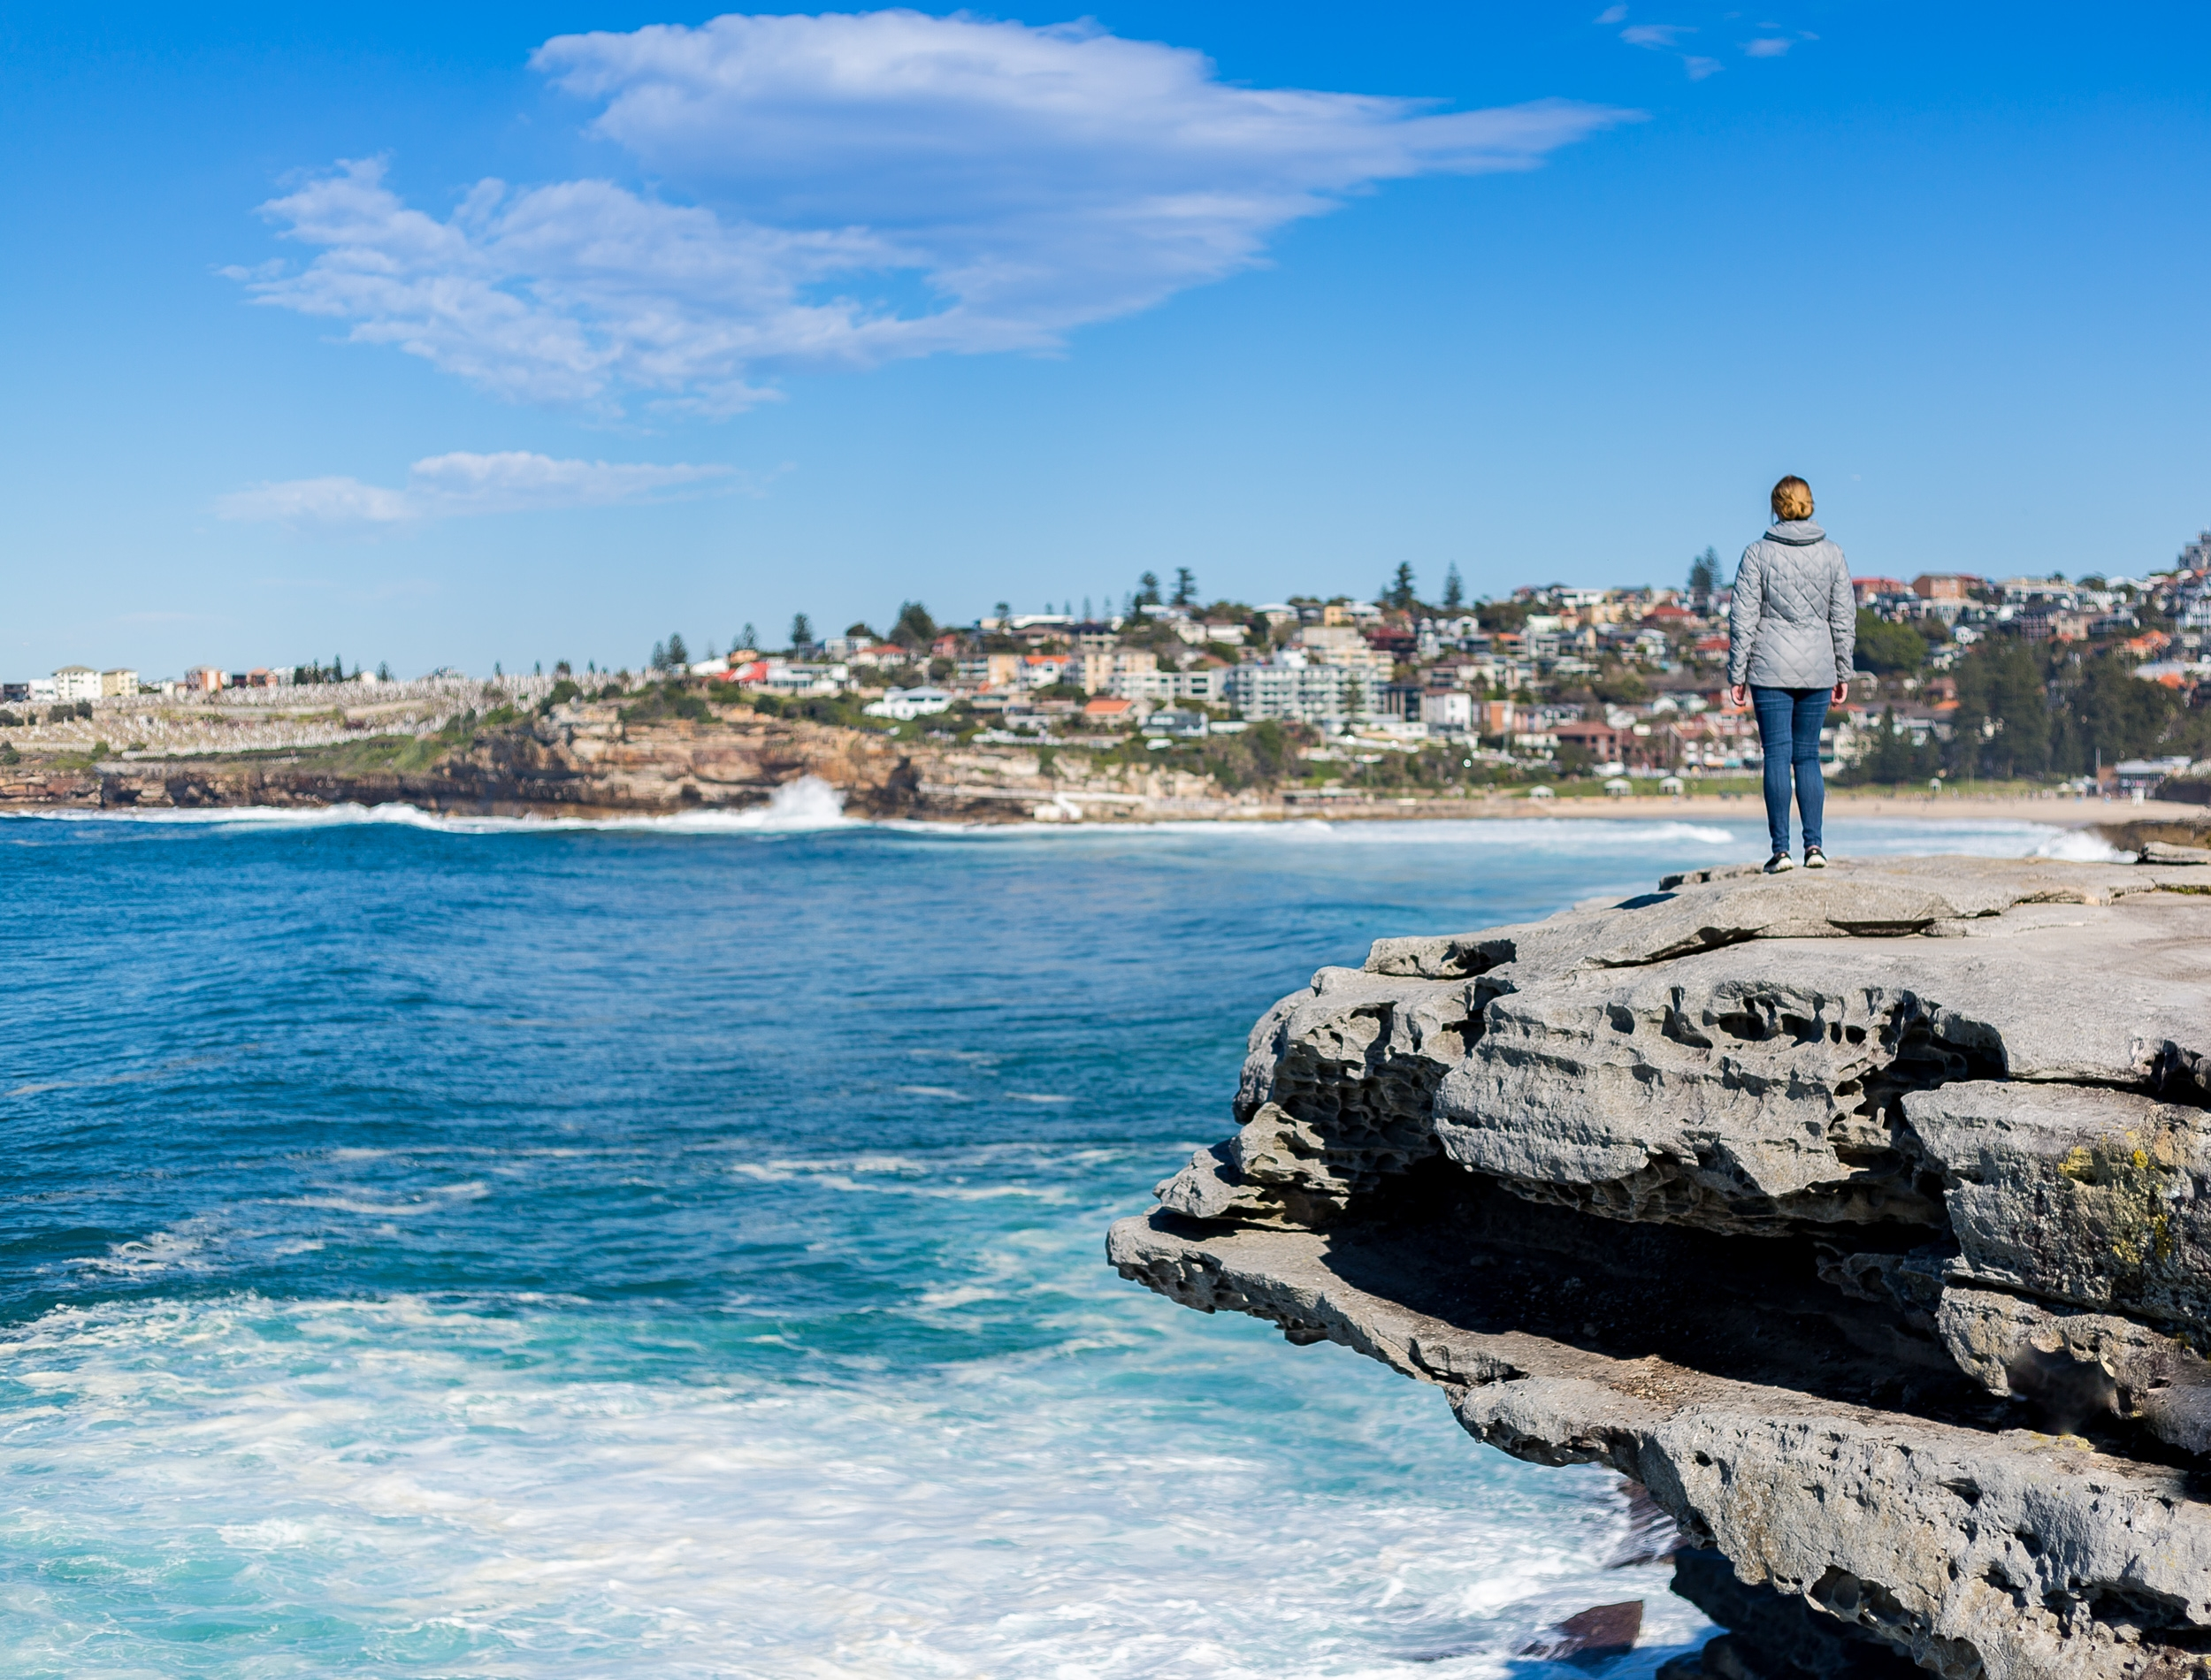 Cheap things to do in Sydney: Bondi to Coogee walk